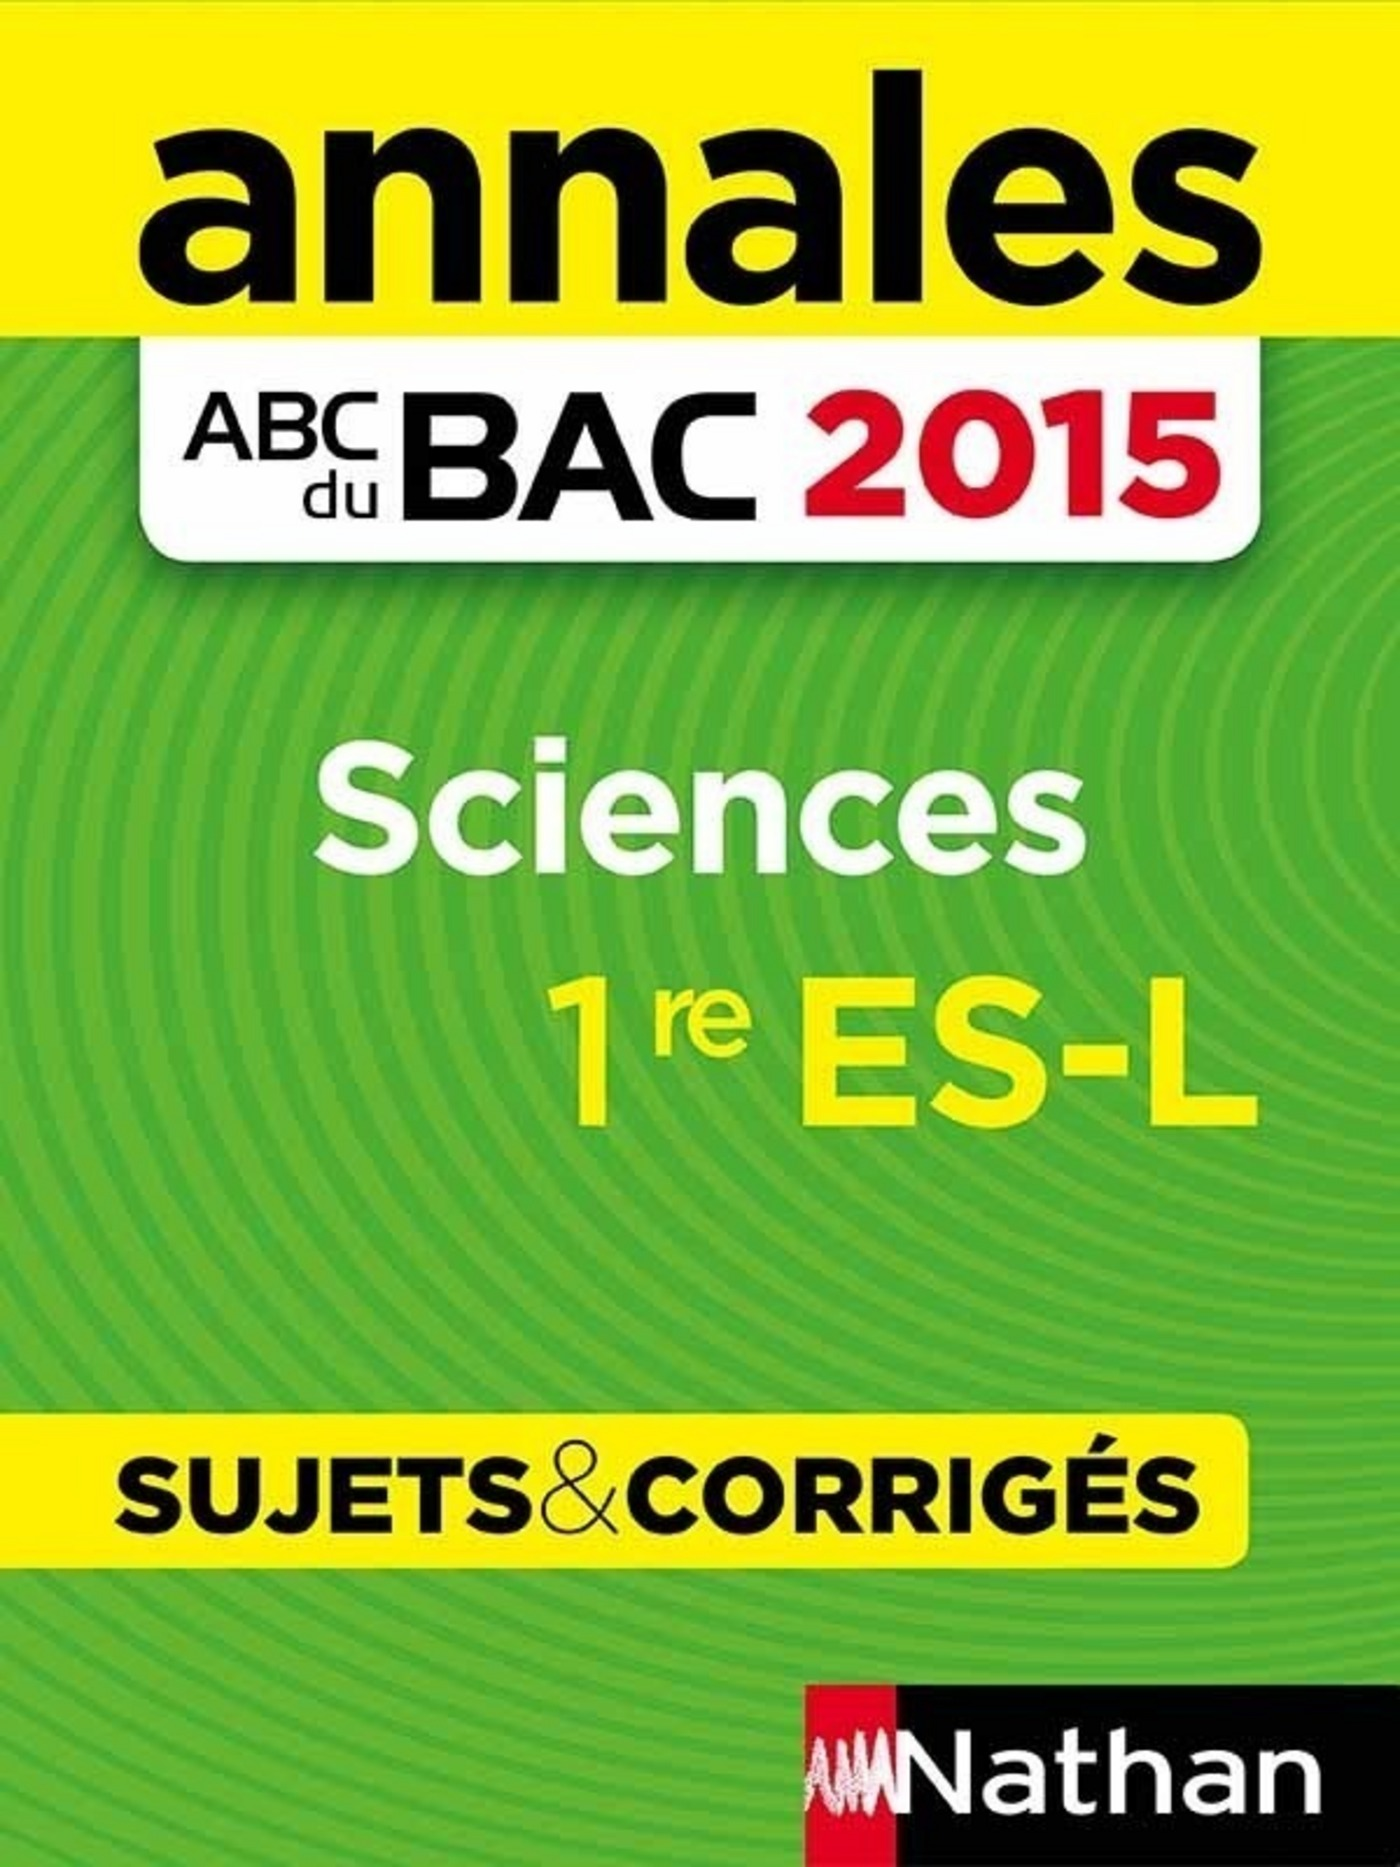 Annales ABC du BAC 2015 Sciences 1re ES.L